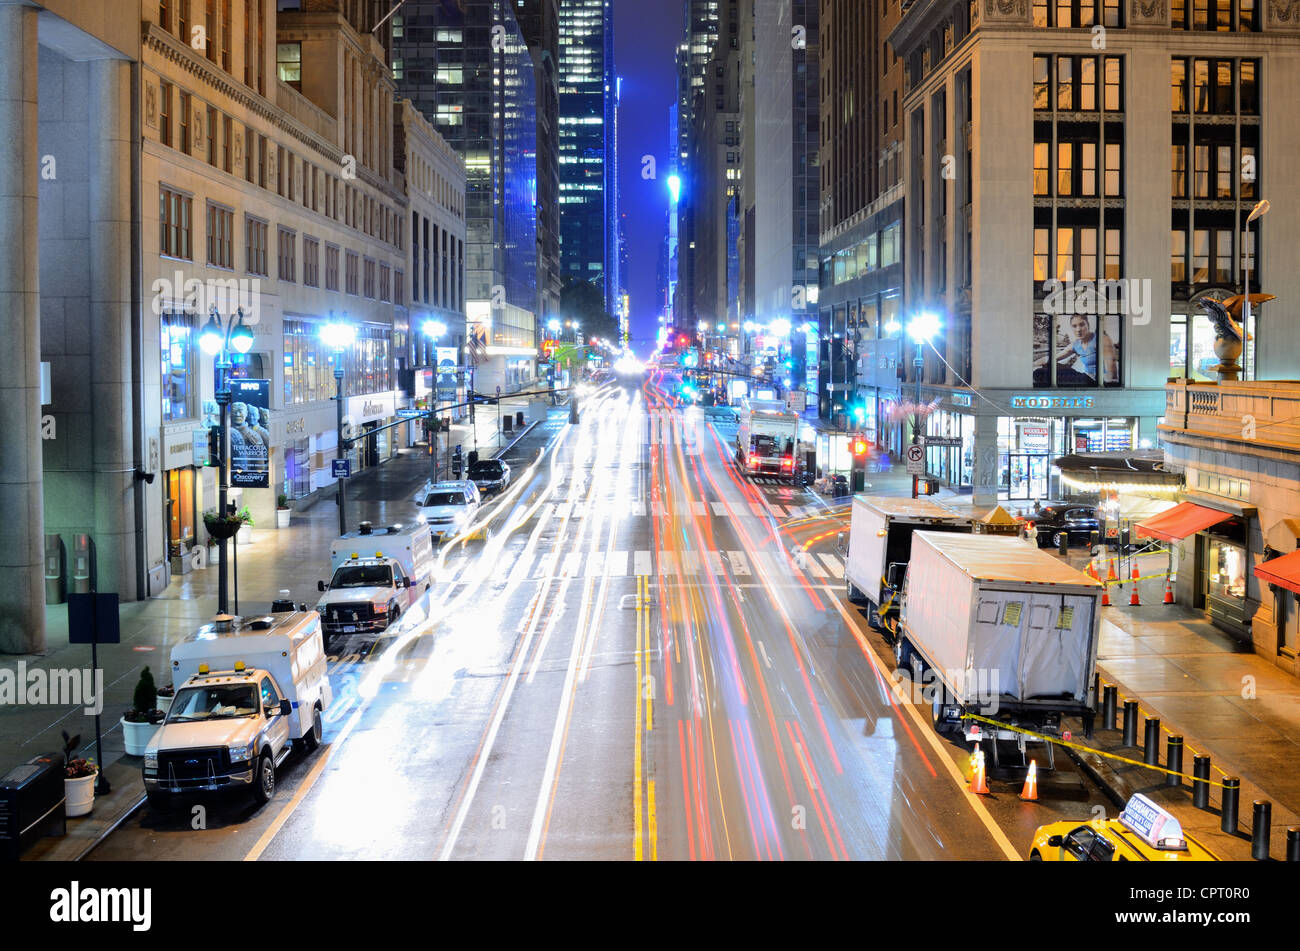 42nd Street in New York, New York. - Stock Image